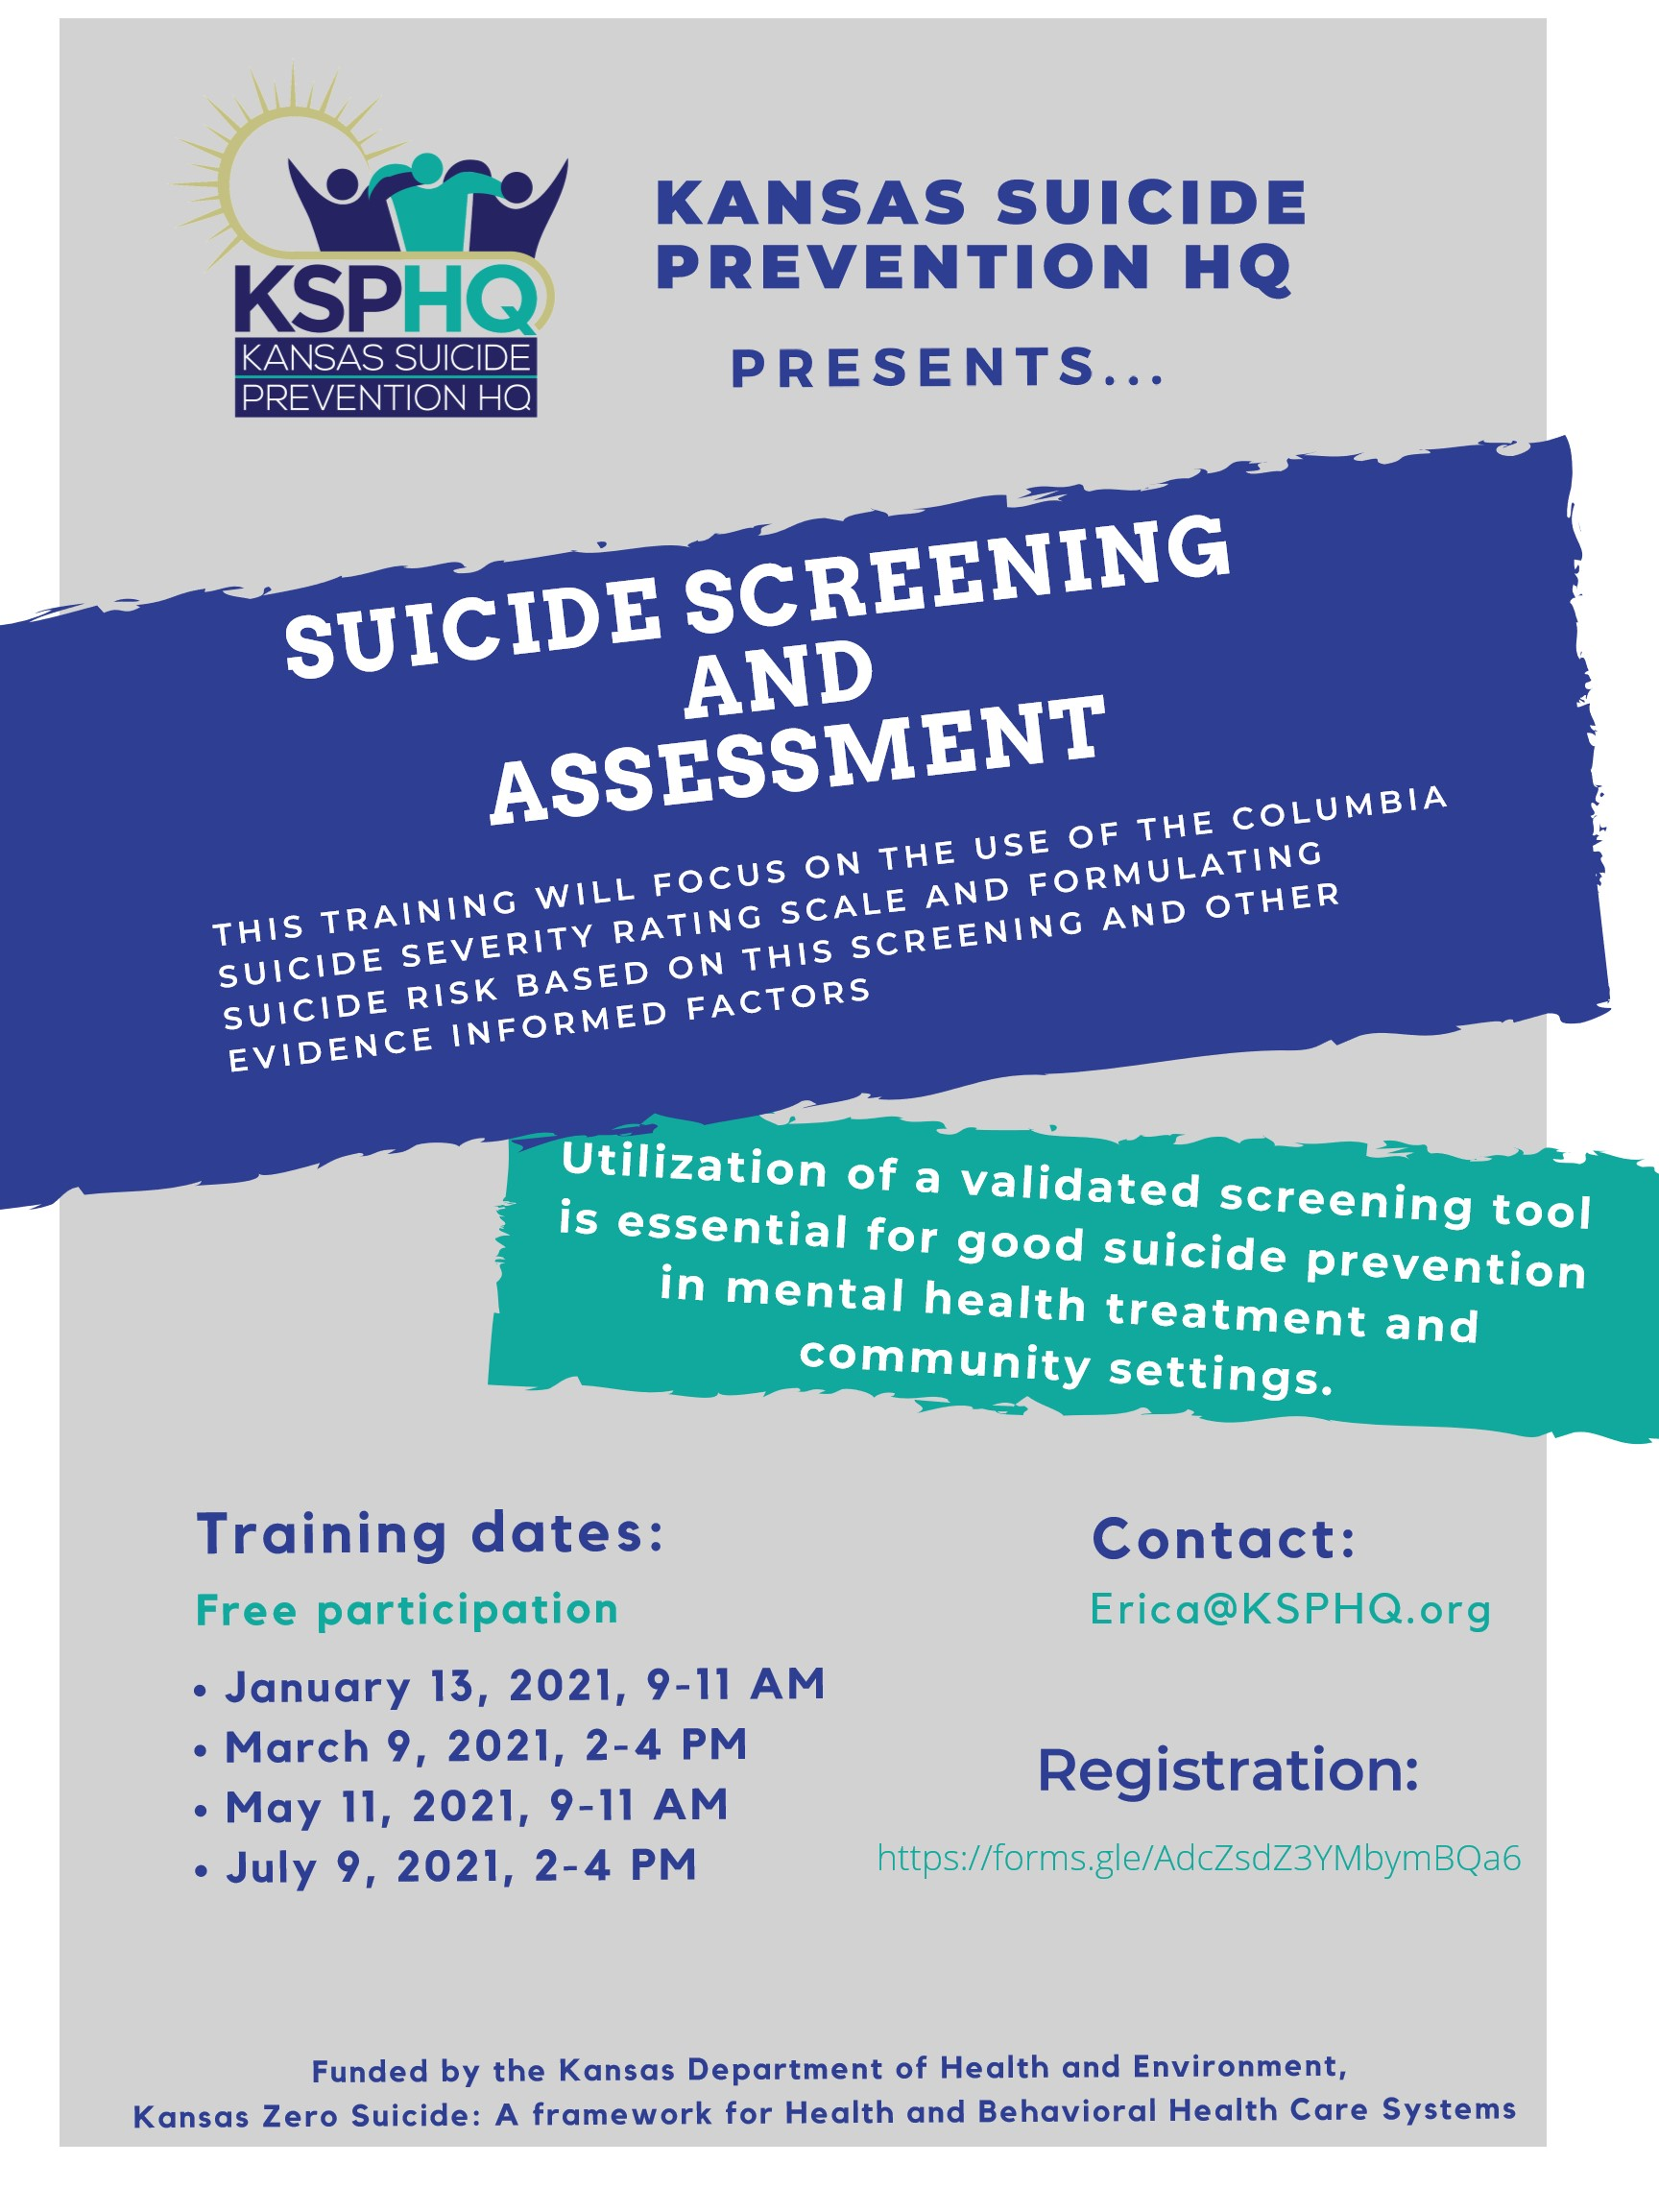 Kansas Suicide Prevention HQ Presents- Screening and Assessment